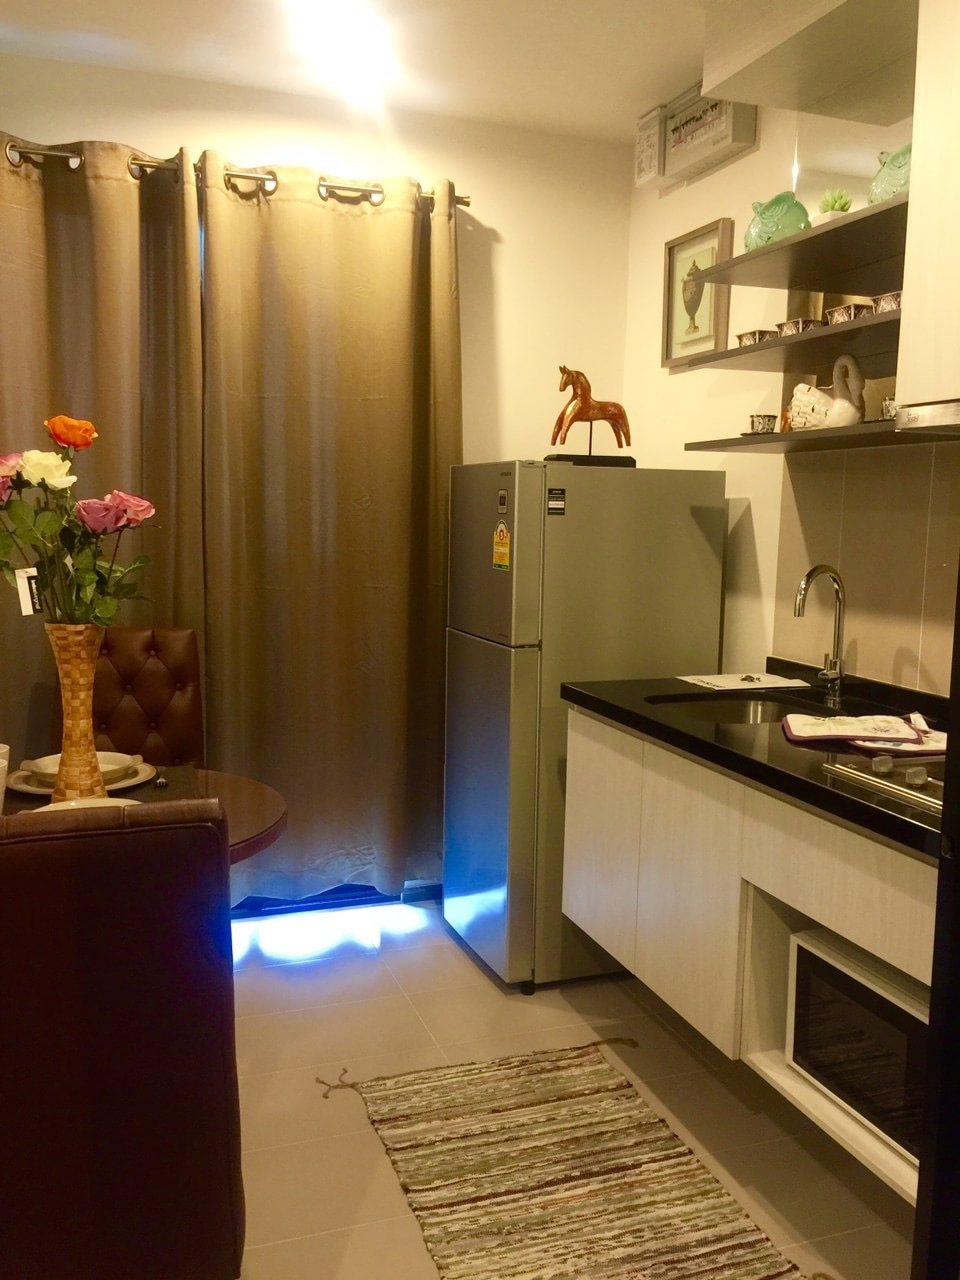 RE/MAX All Star Realty Agency's Ful furnished one bedder for rent 13,800 Baht at On Nut BTS – Basepark East (Soi 77) 6